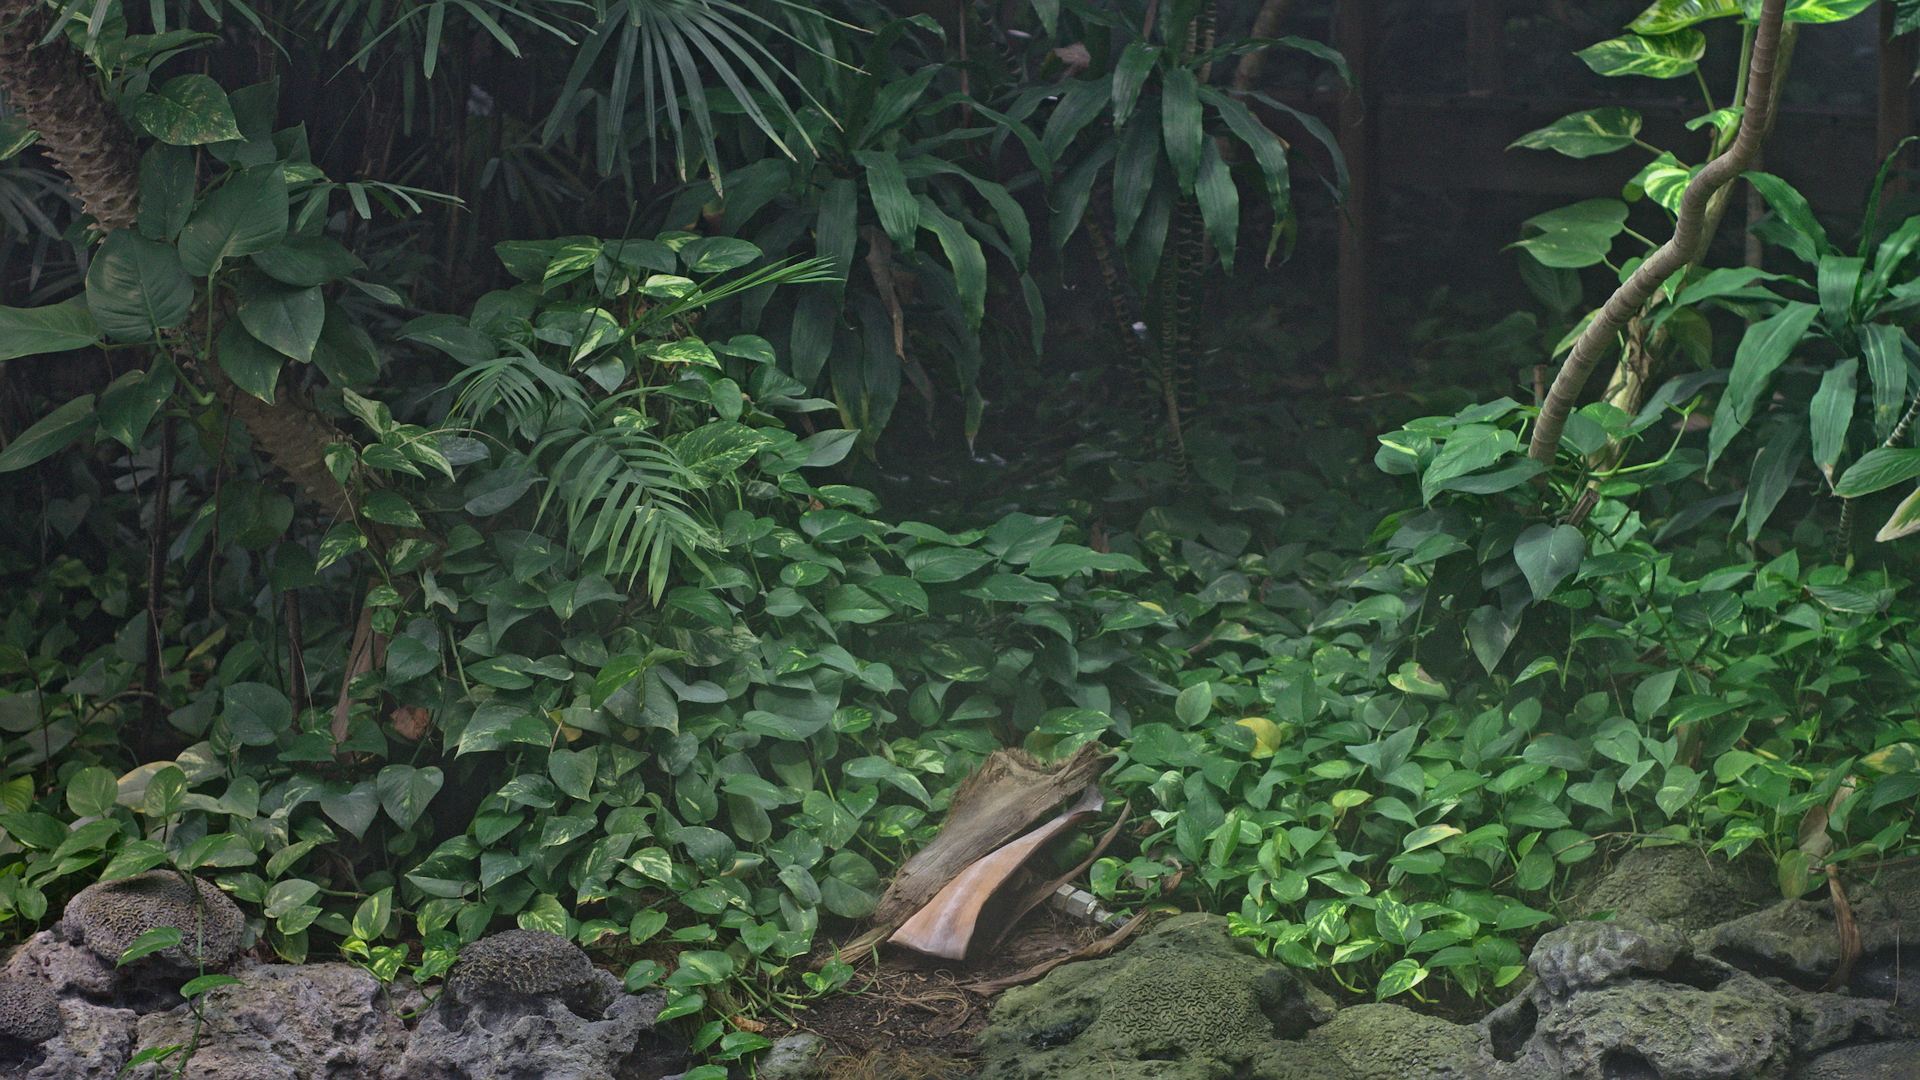 Png Of Jungle - File:Jungle (38741268965).png - Wikimedia Commons